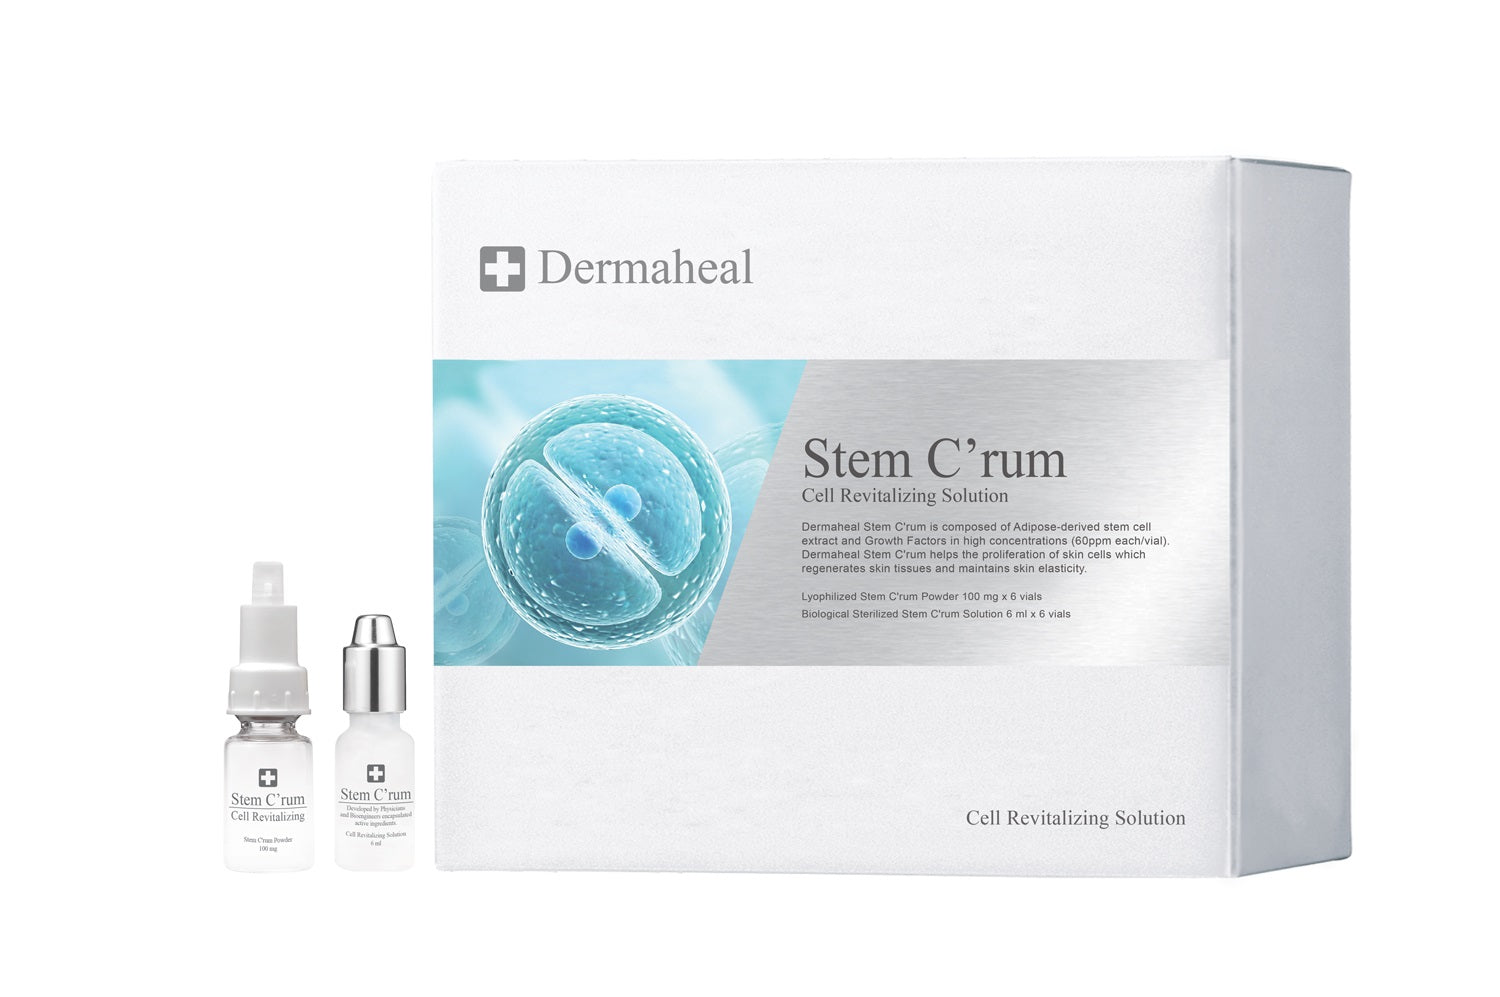 Dermaheal Stem C'rum Cell Revitalizing Solution [7-14 day ship]